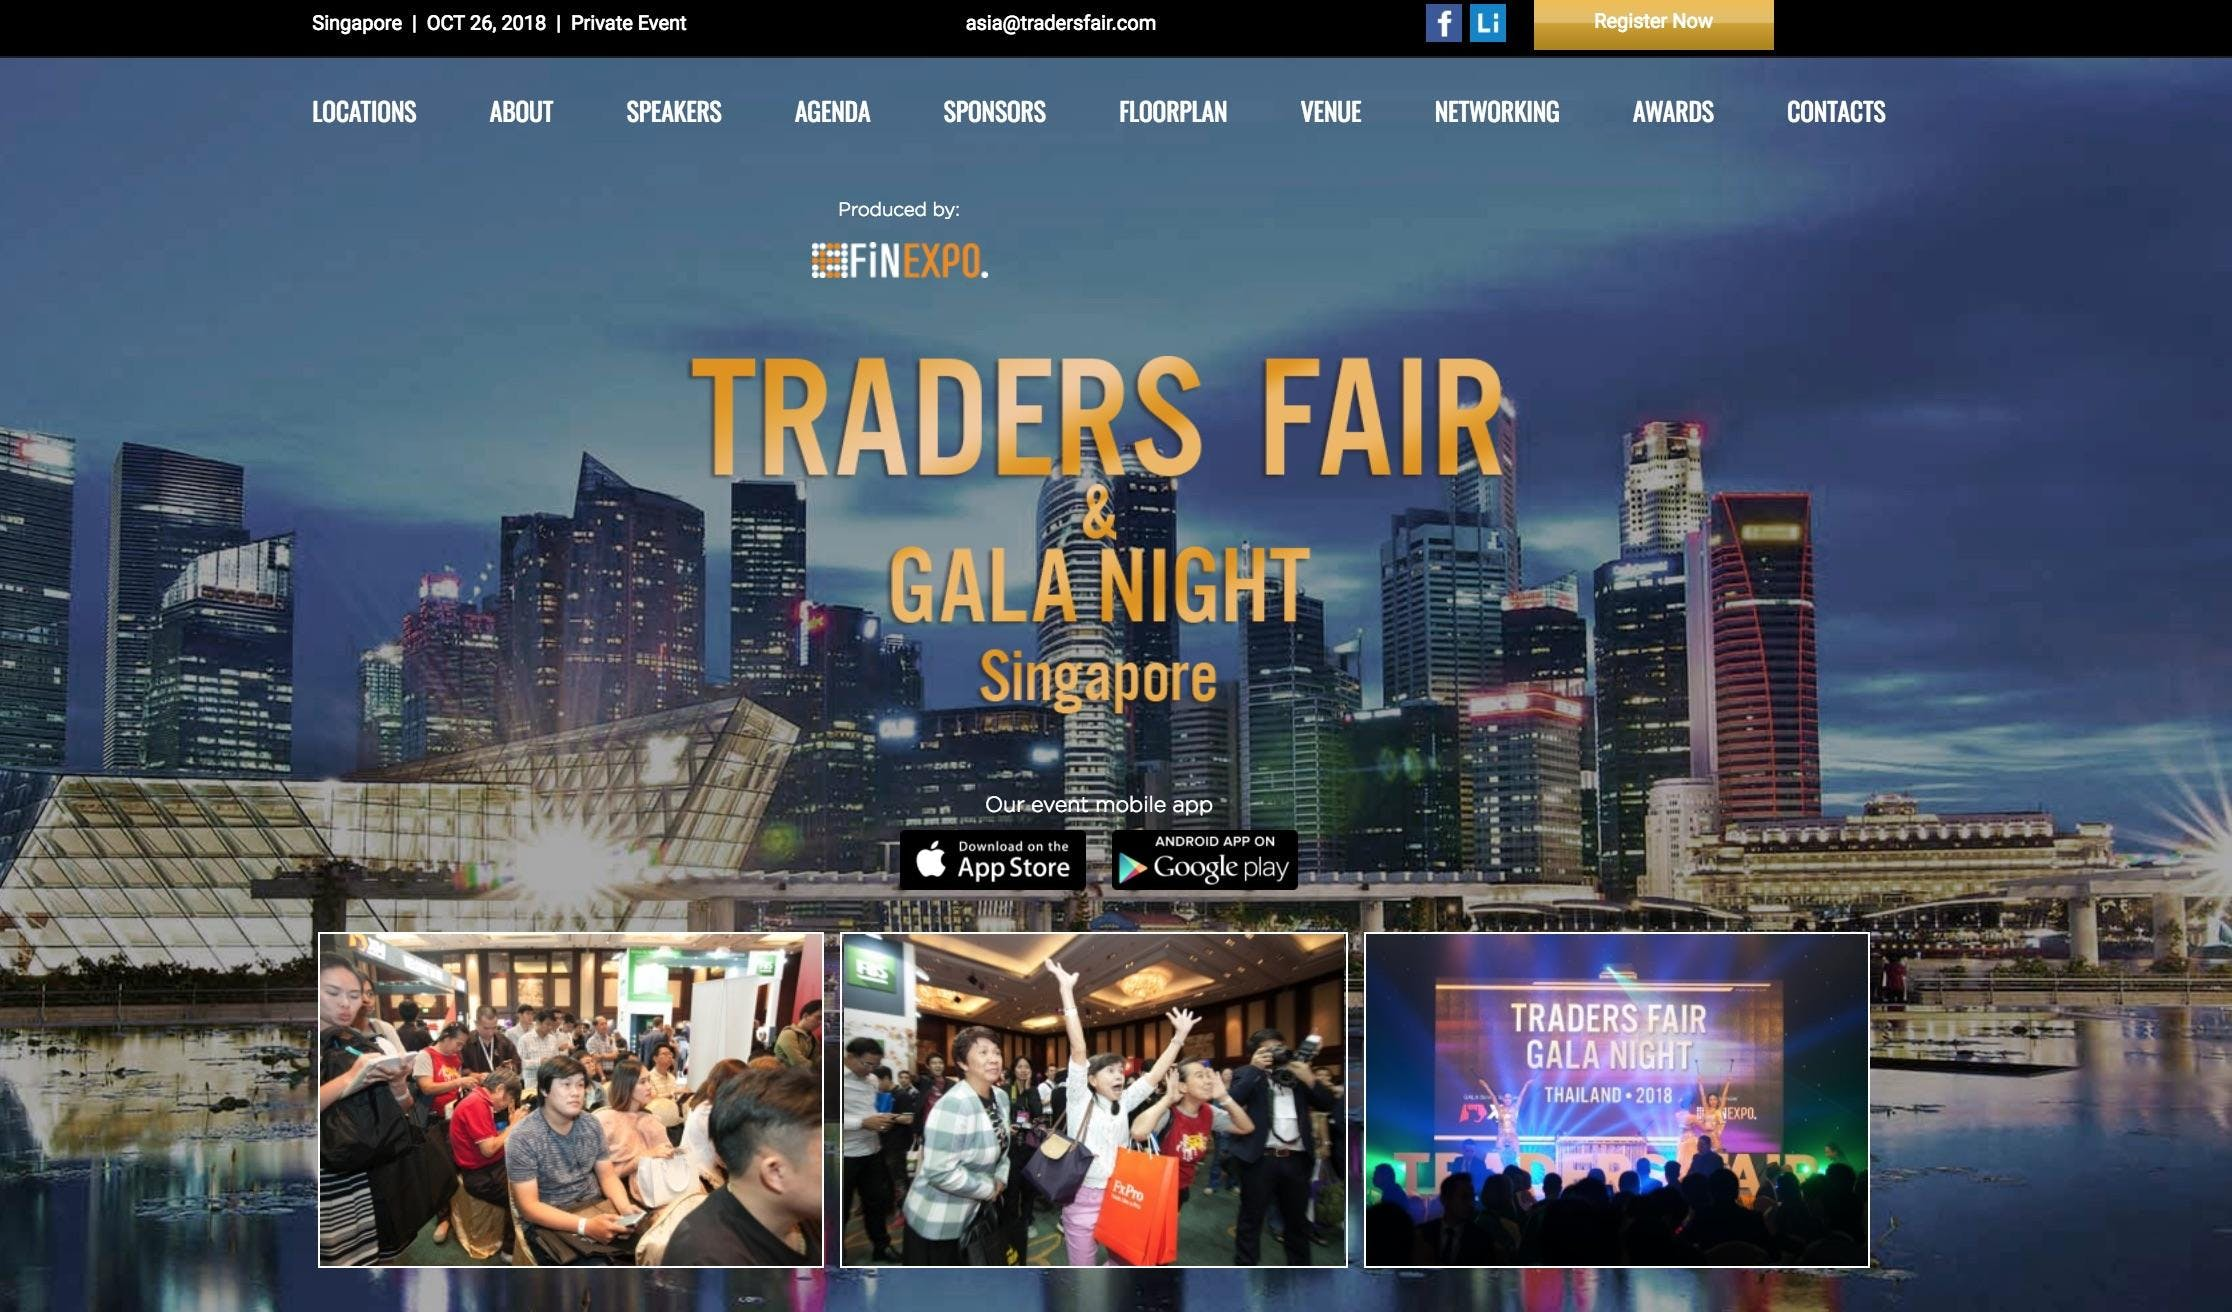 Traders Fair 2018 - Singapore (Financial Even